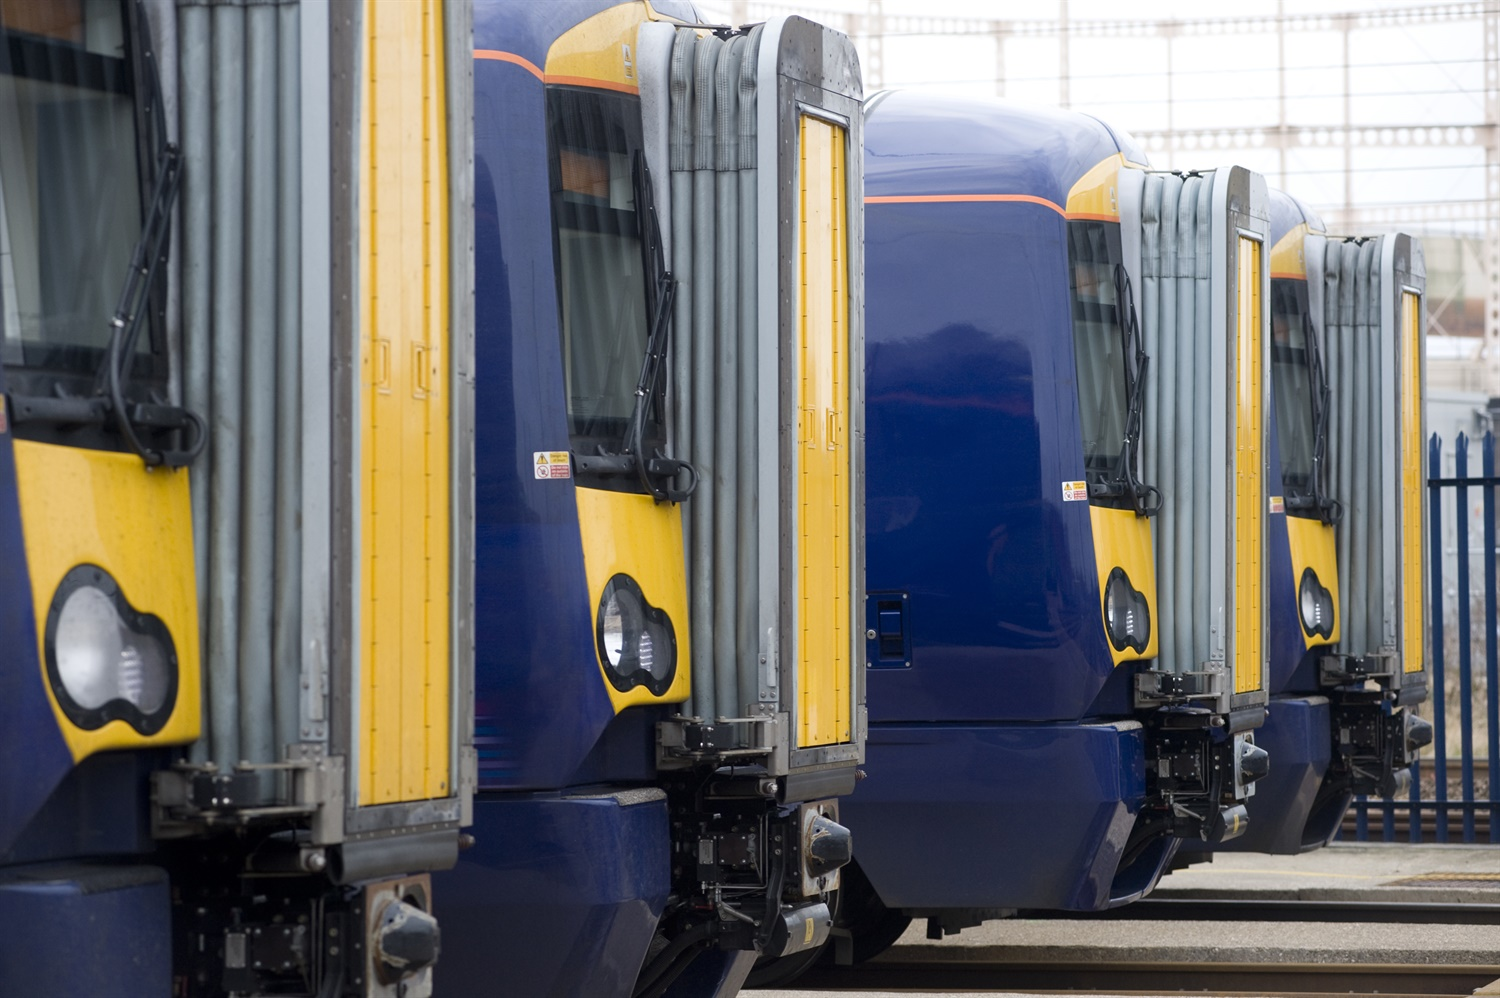 New online database for GB rolling stock to launch this year